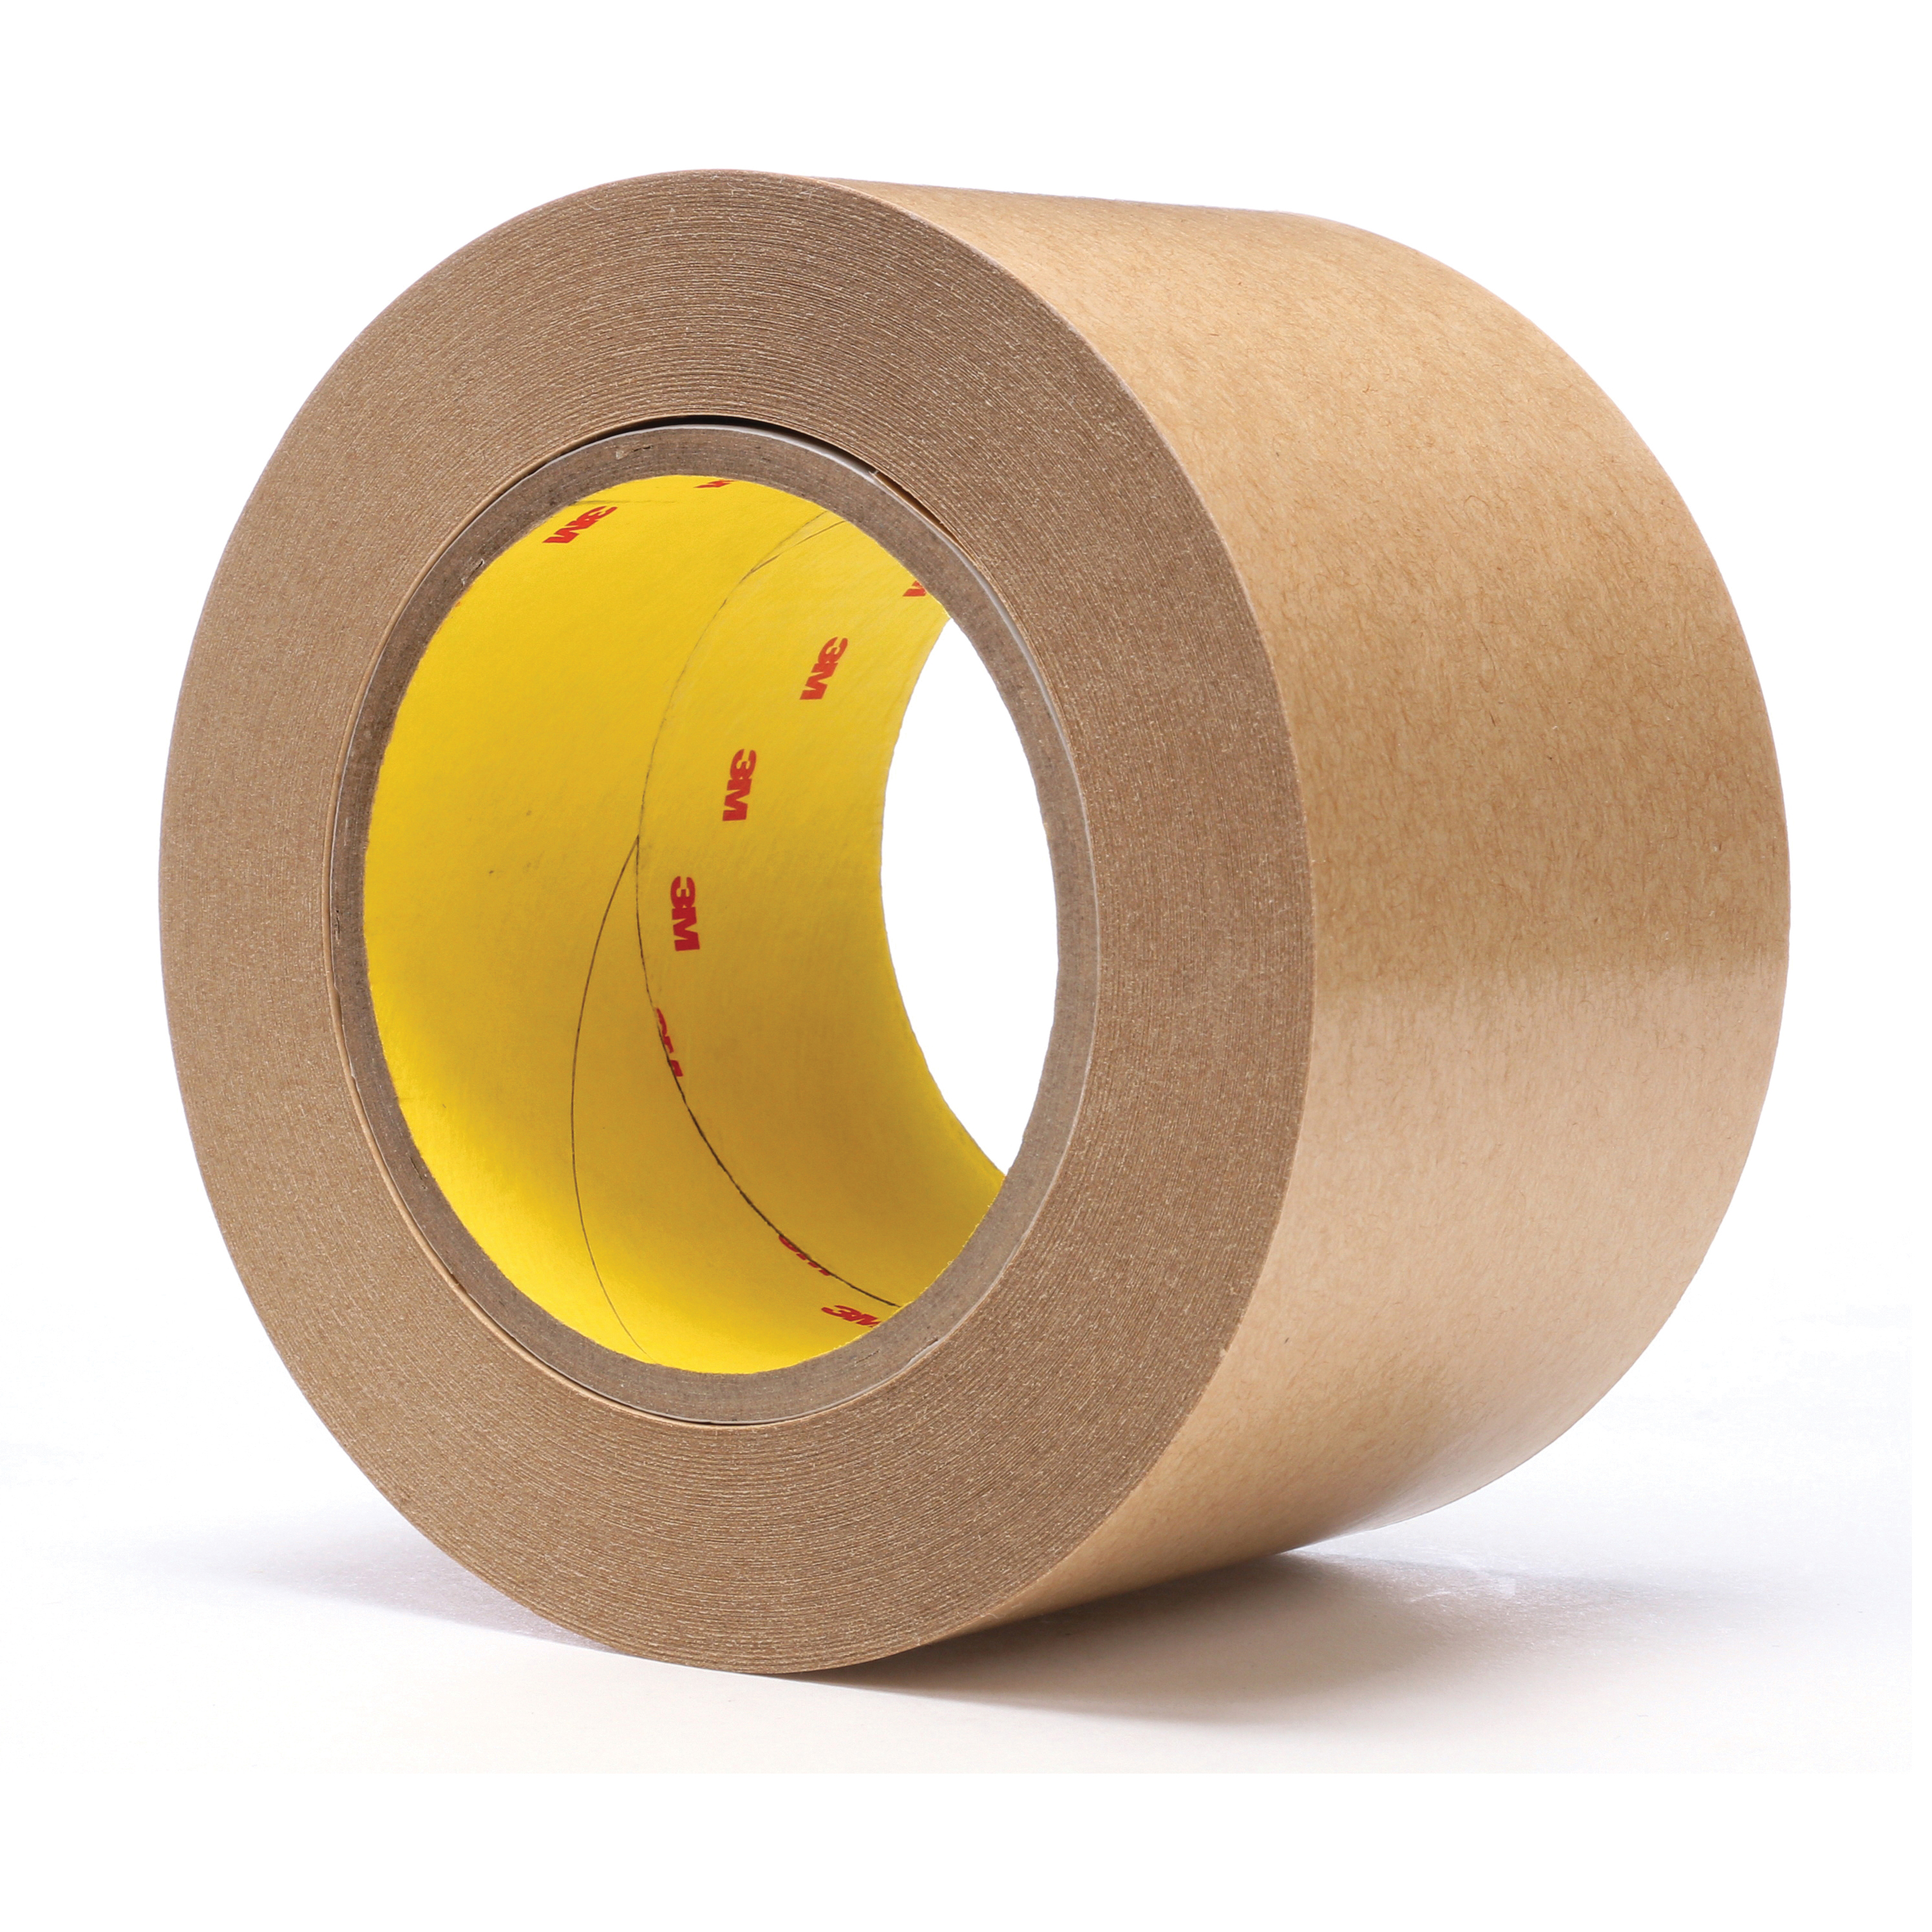 3M™ 021200-03339 Fibered General Purpose Adhesive Transfer Tape, 60 yd L x 3 in W, 2 mil THK, 2 mil 400 Acrylic Adhesive, Clear